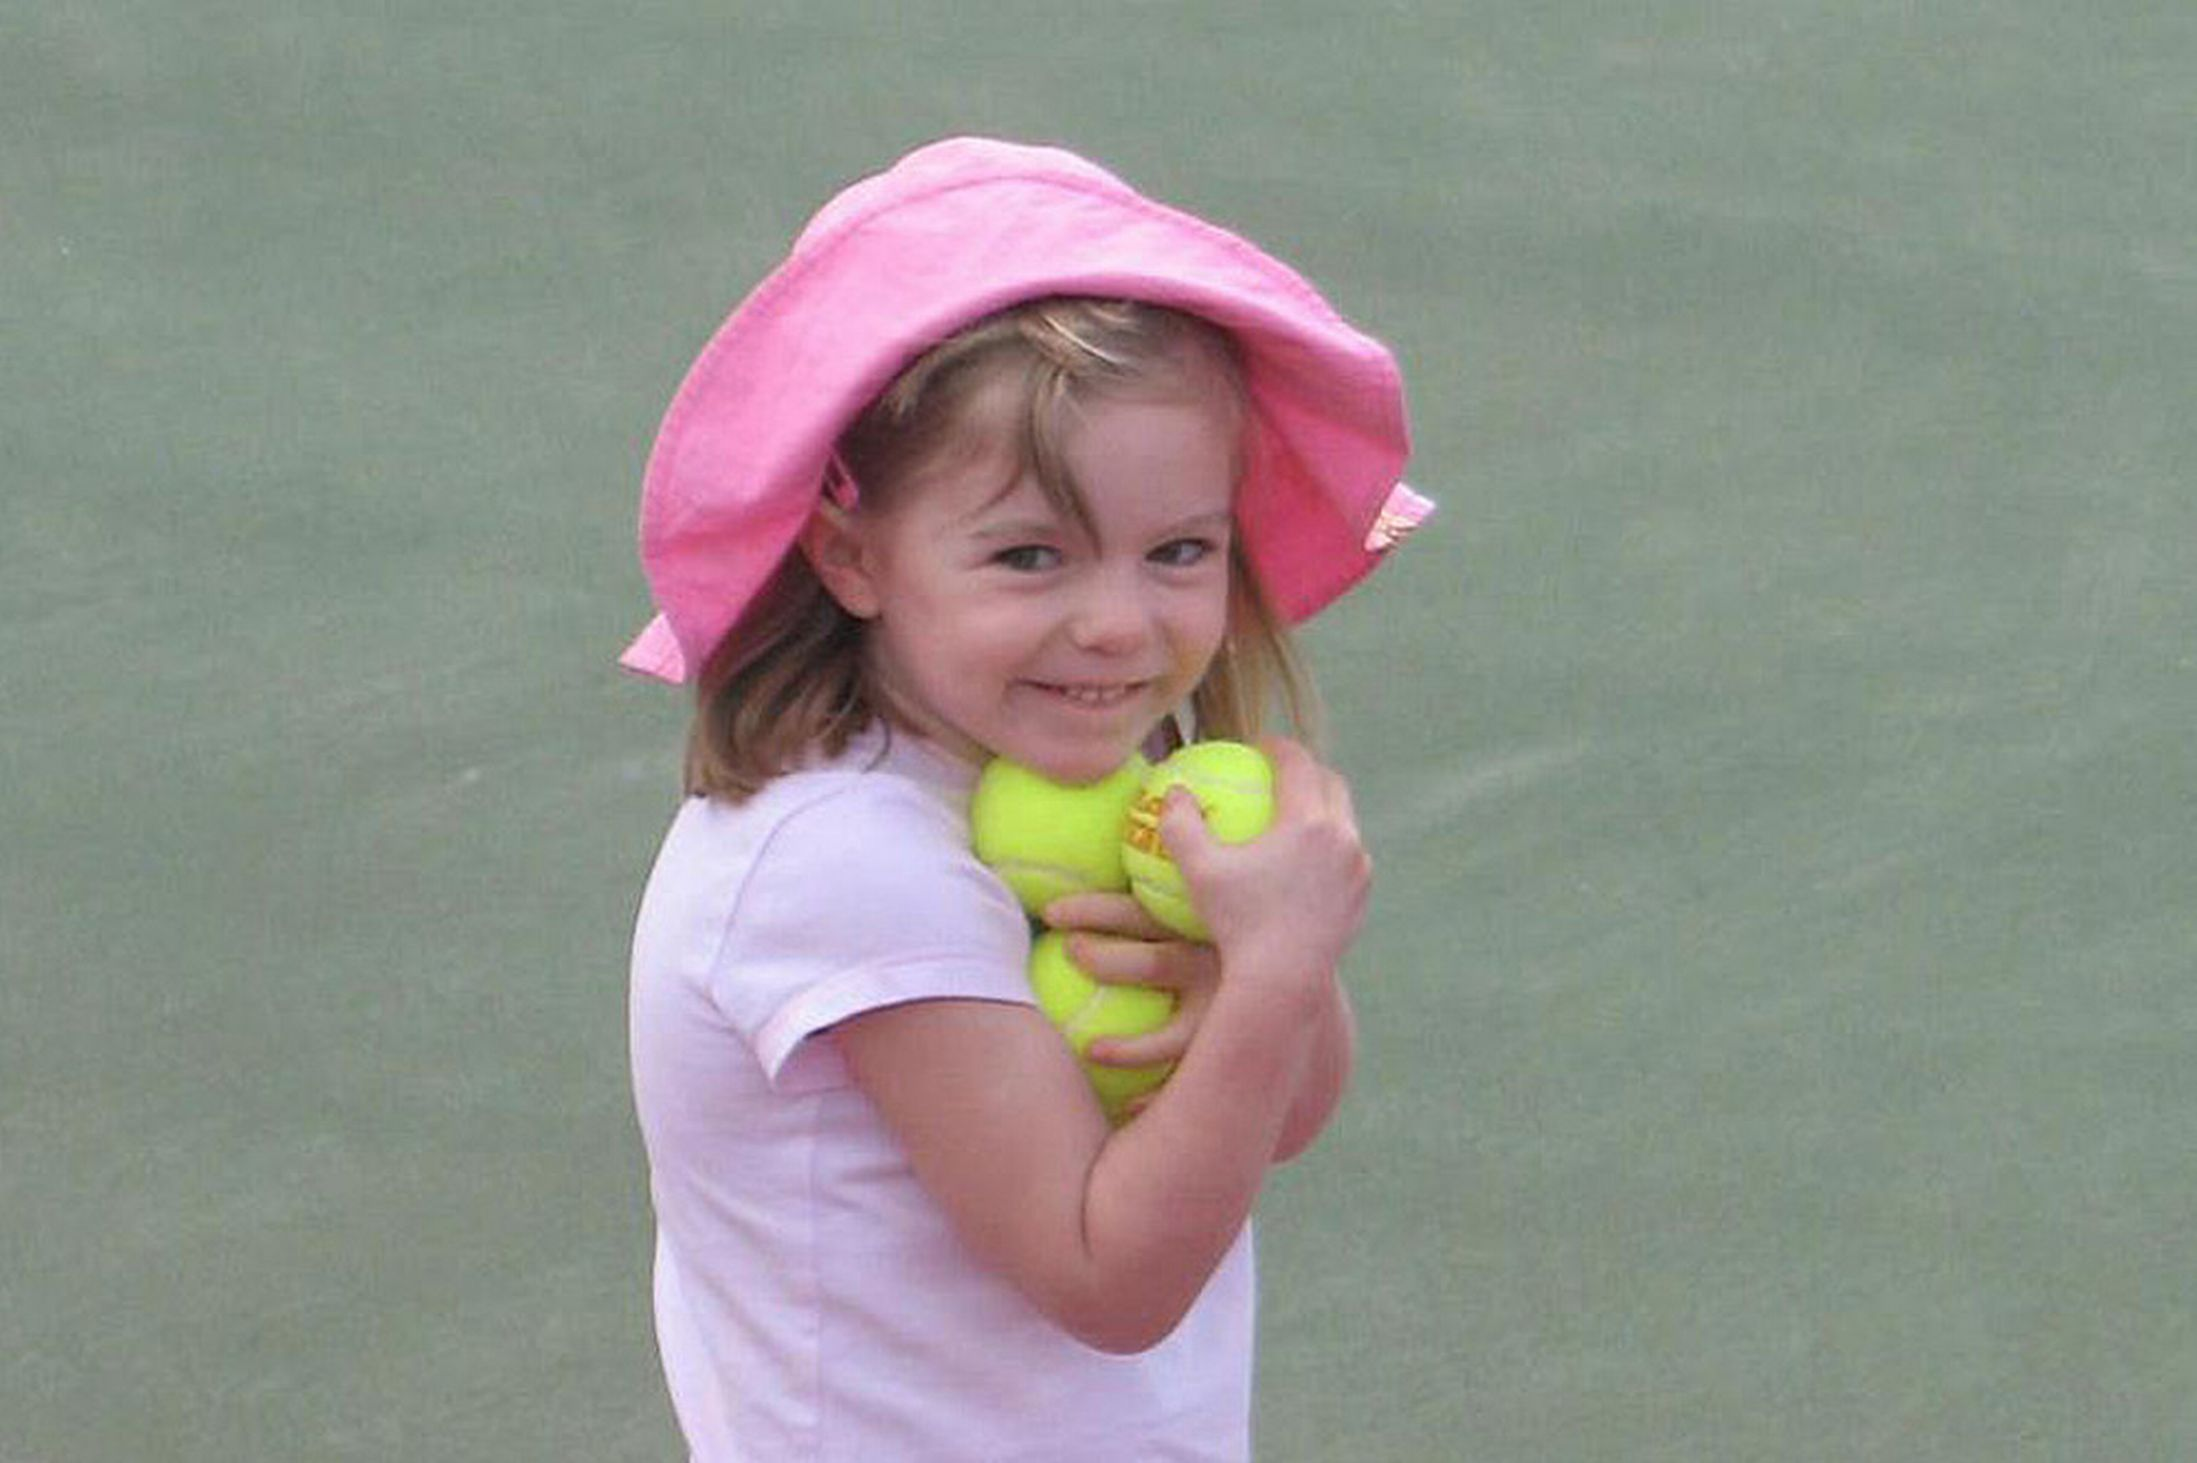 The NEW Tennis Balls Photo Thread - 'Photoshopped photo created on 5th May', claims YouTube video - Page 2 Maddie-McCann